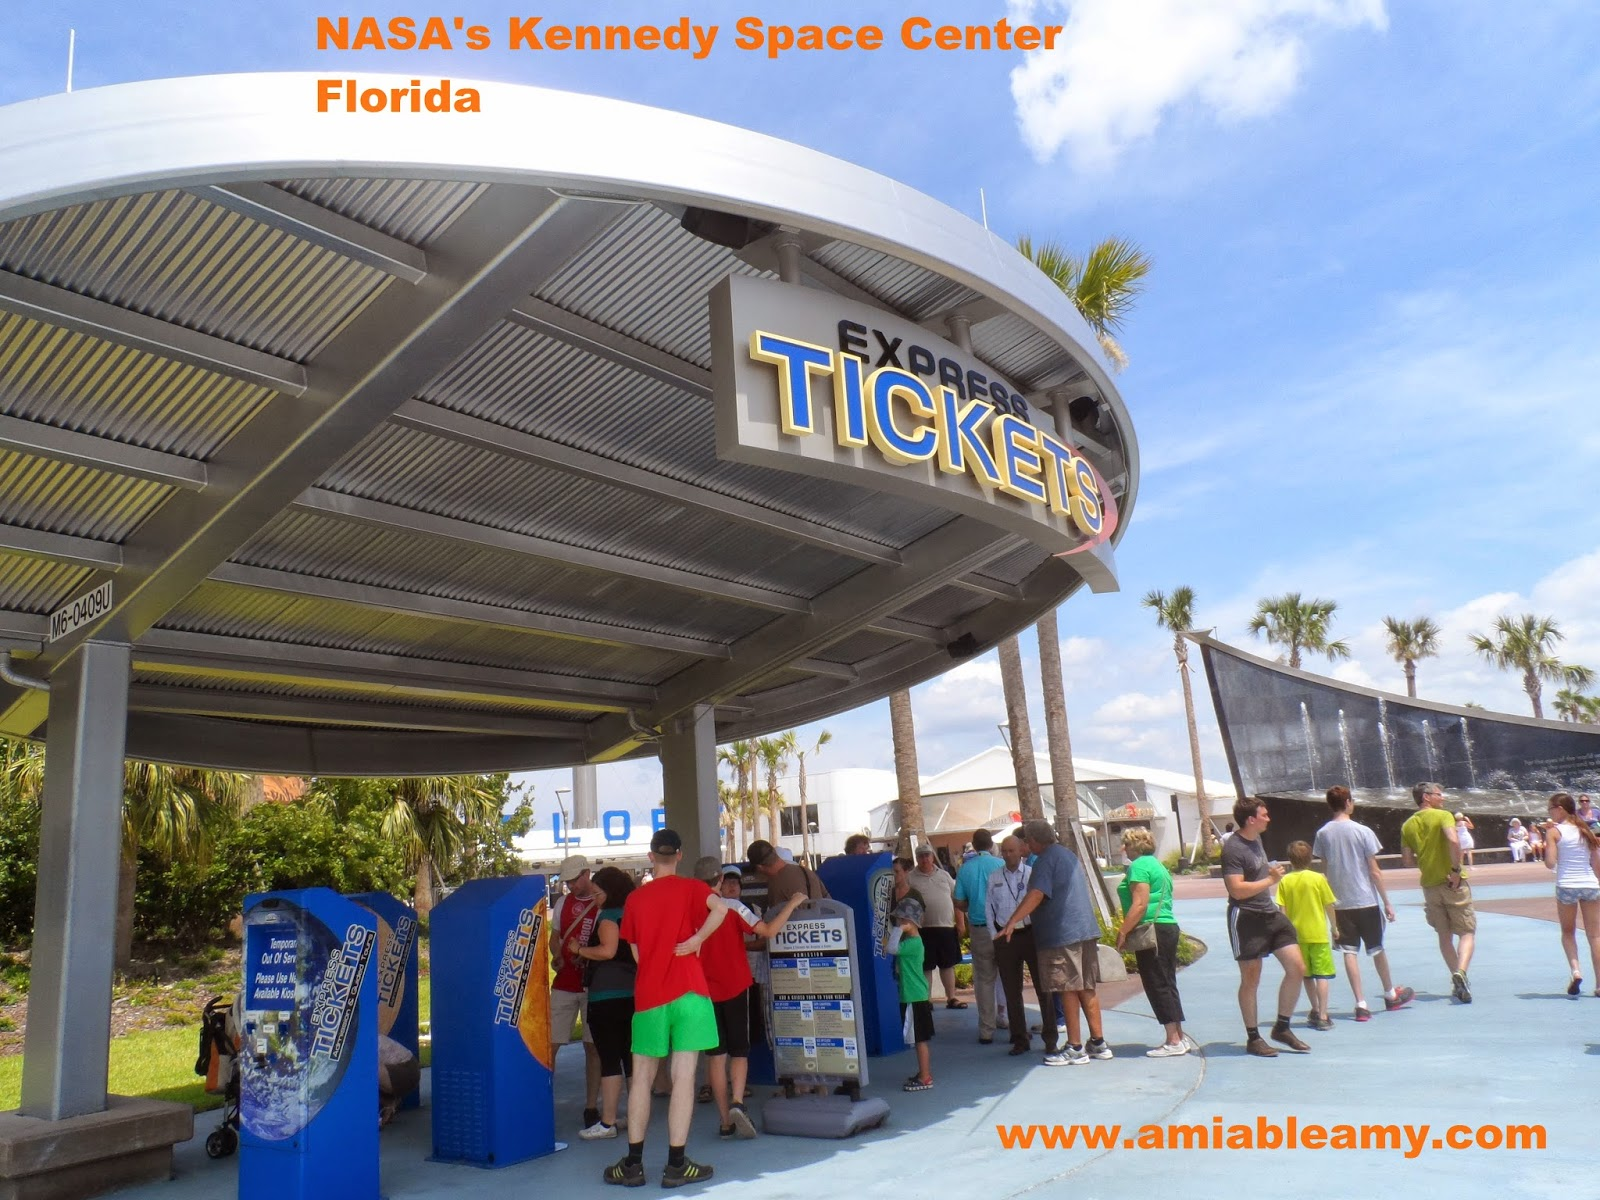 Kennedy Space Center Tickets -2 Adult Tickets – ONLY $19.99 Deposit!